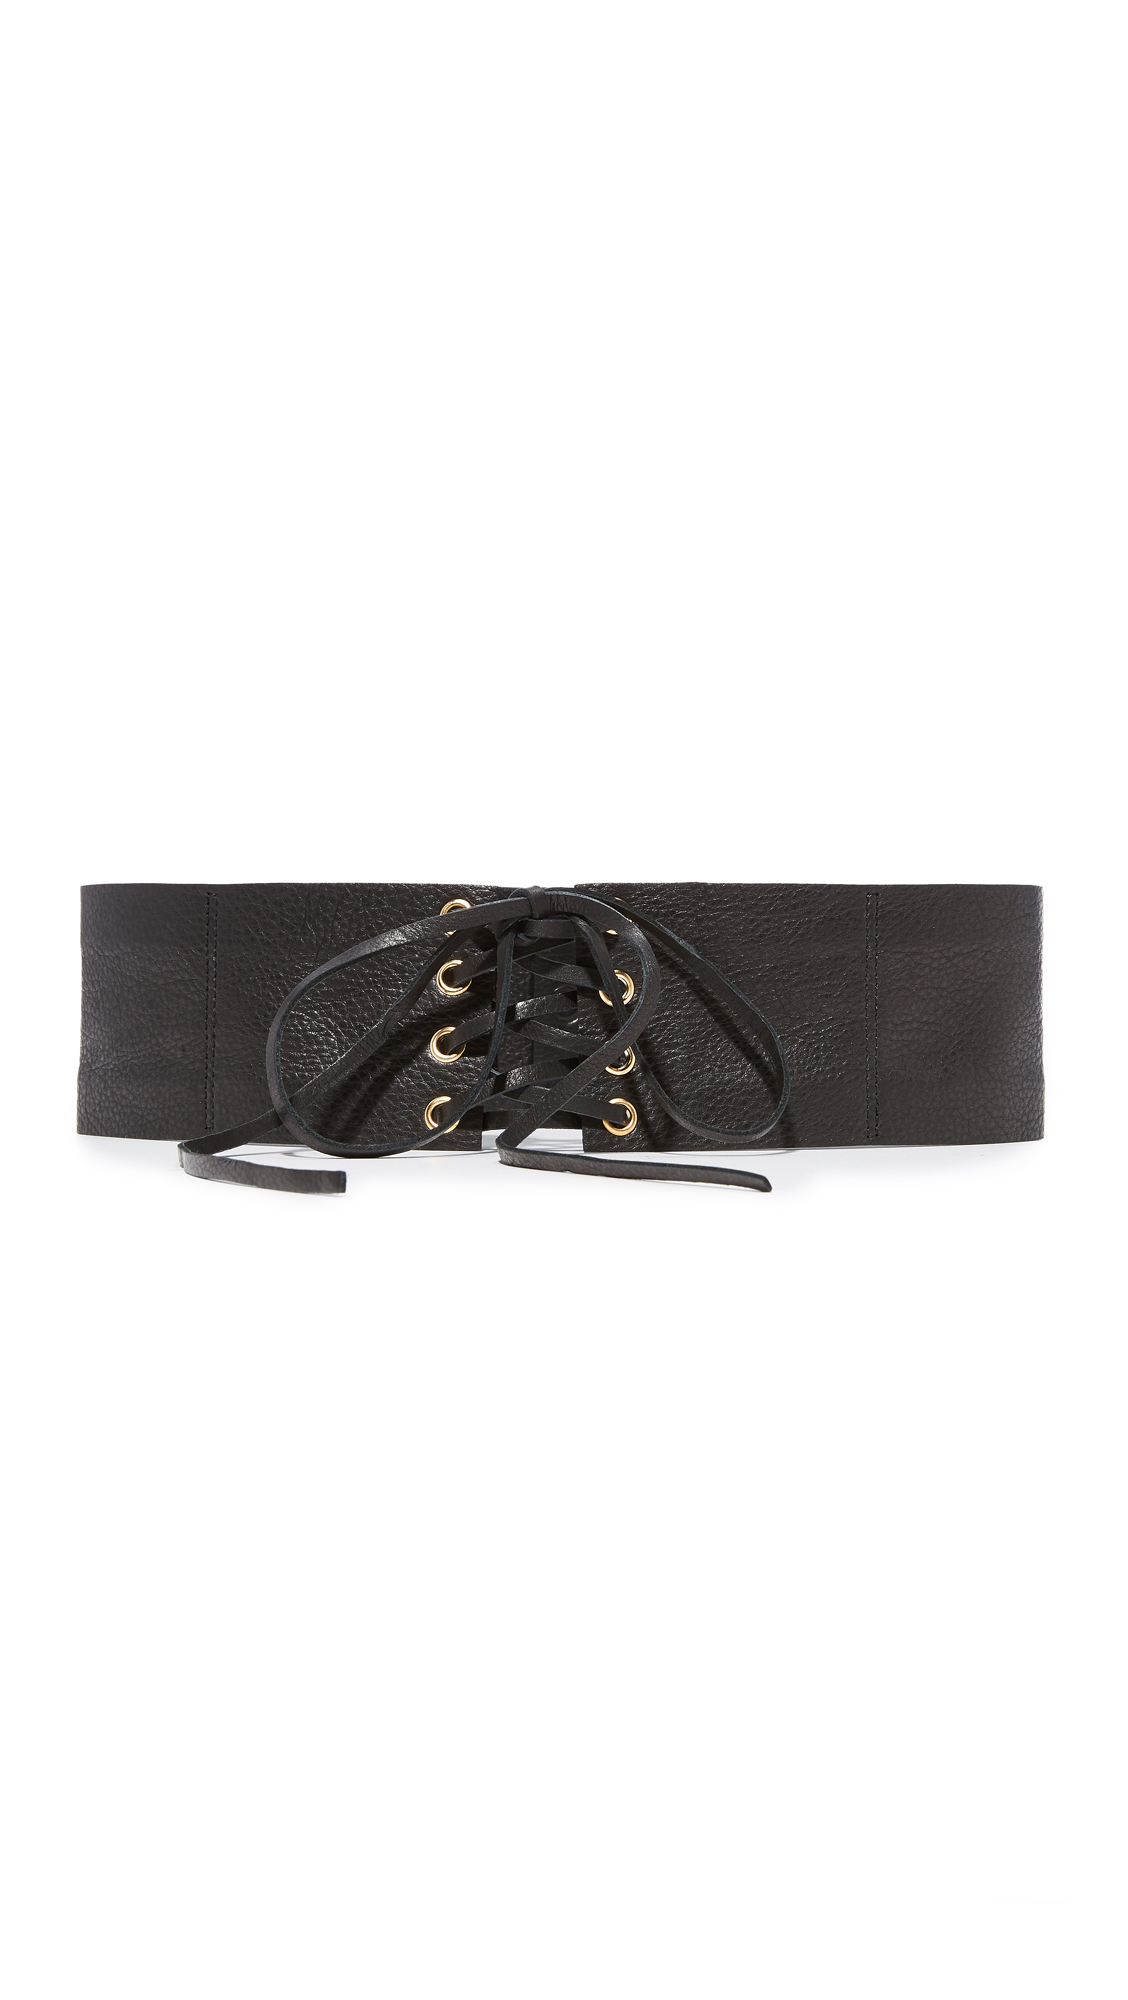 B-Low The Belt Eve Corset Belt - Black/Gold